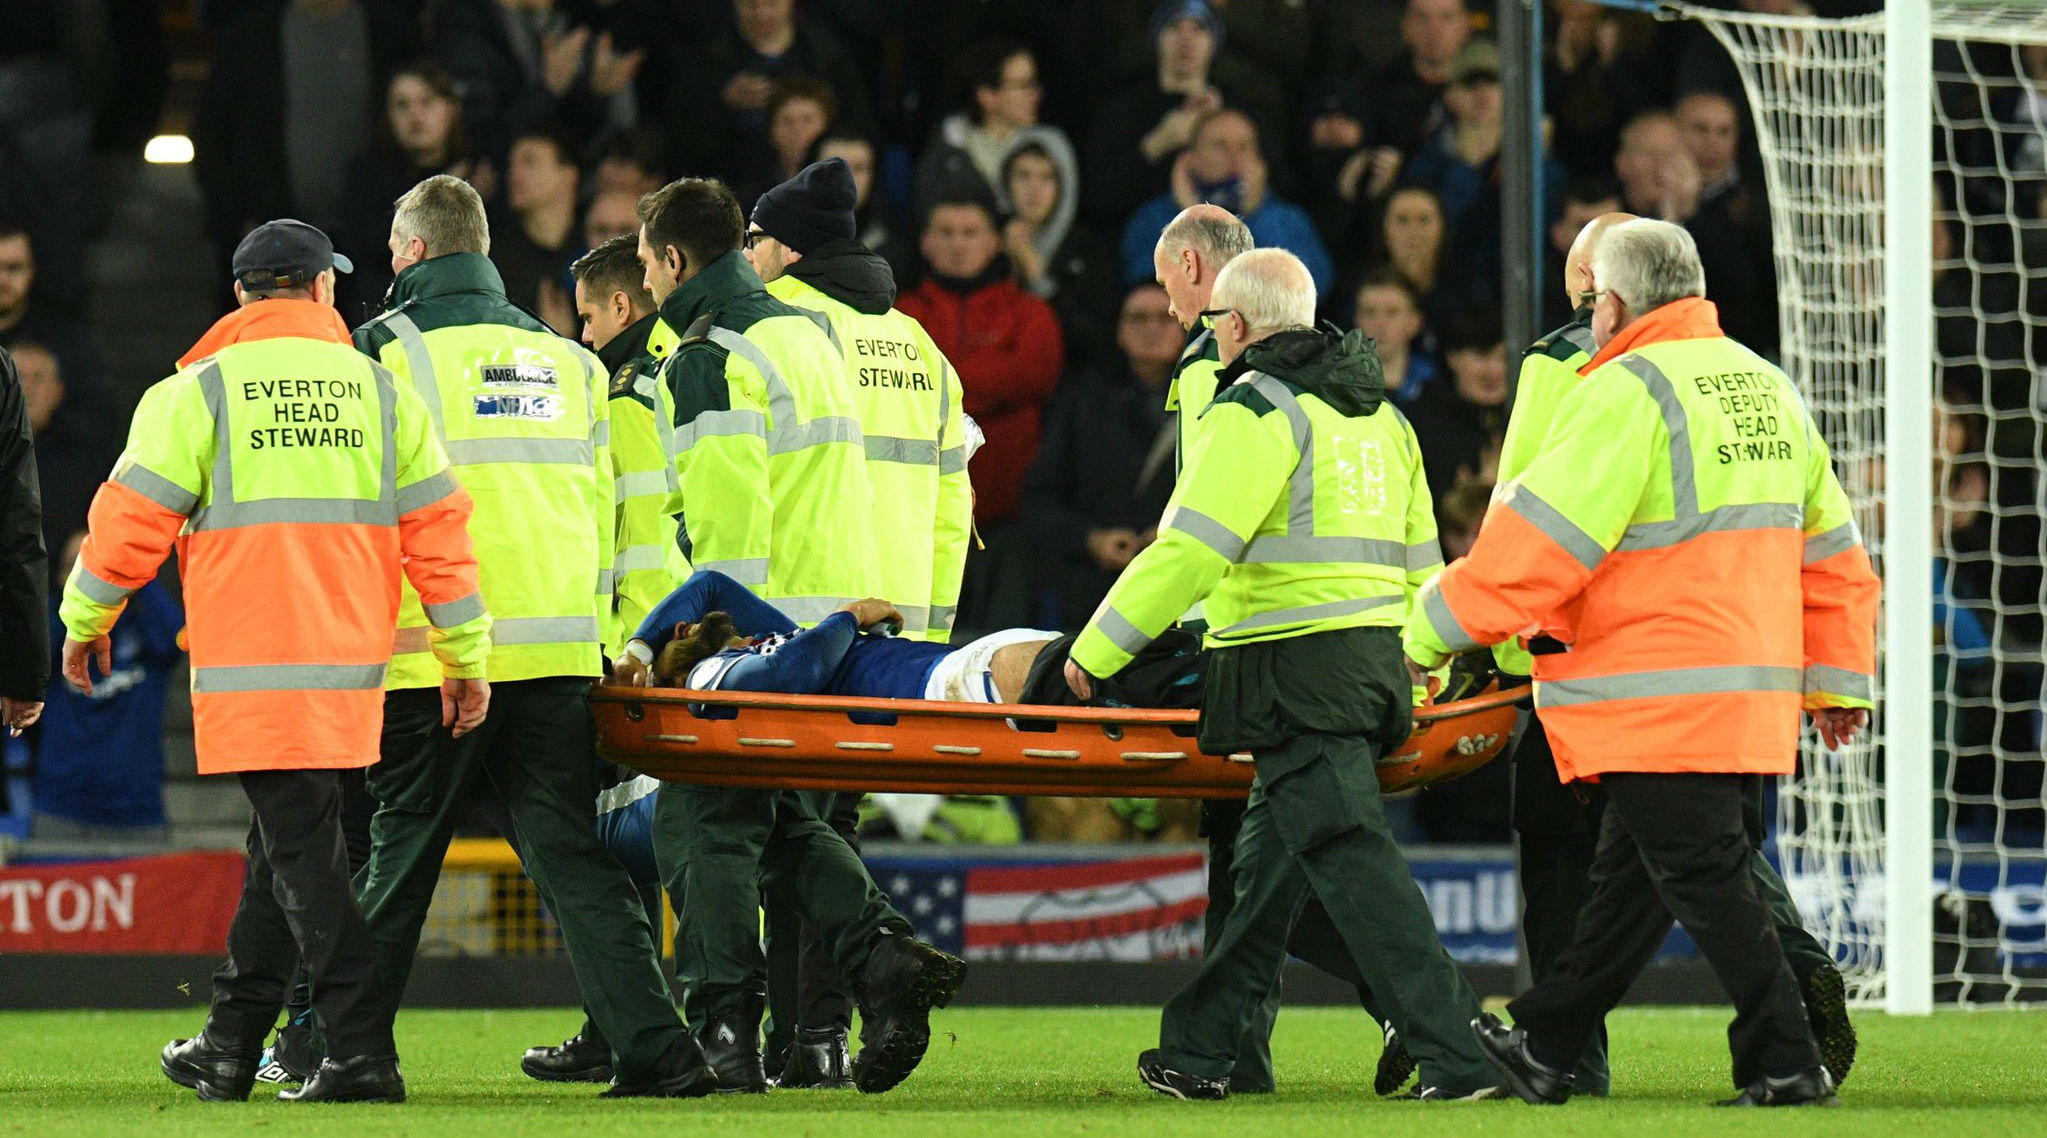 Andre Gomes Suffers Horrorible Ankle Injury, 'Devastated' Son Heung-min Sees Red as Everton Deny Tottenham Hotspur